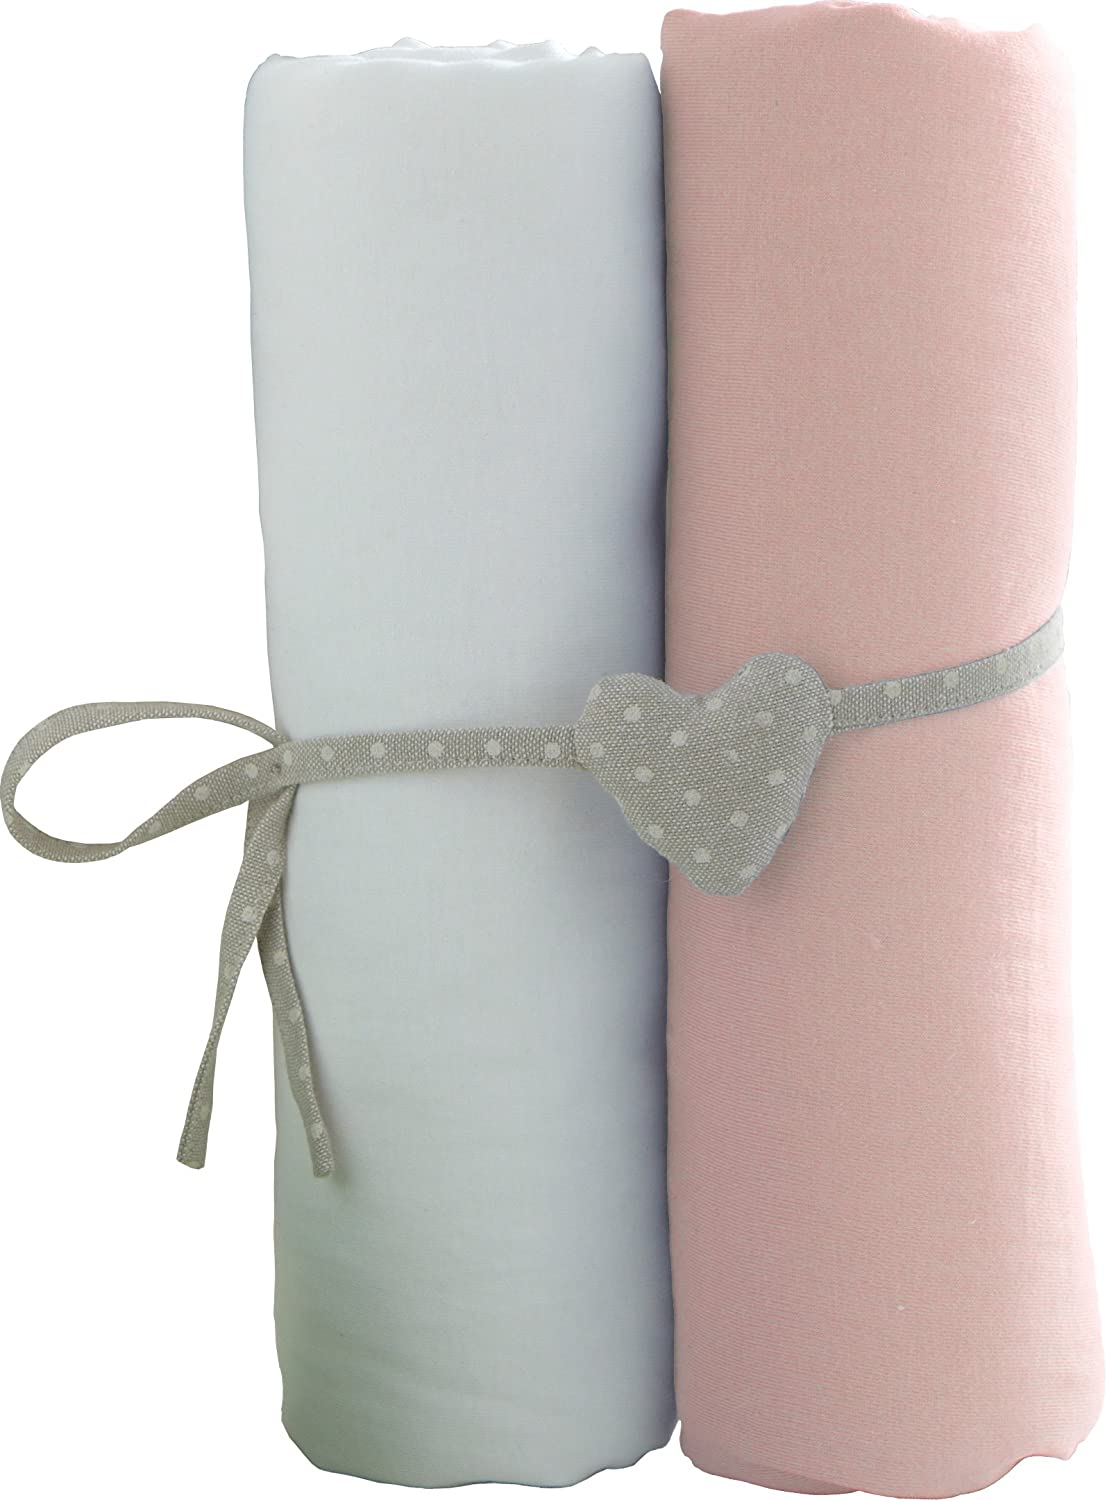 Babycalin lot de 2 Draps Housse Blanc/Rose 60 x 120 cm BBC413714